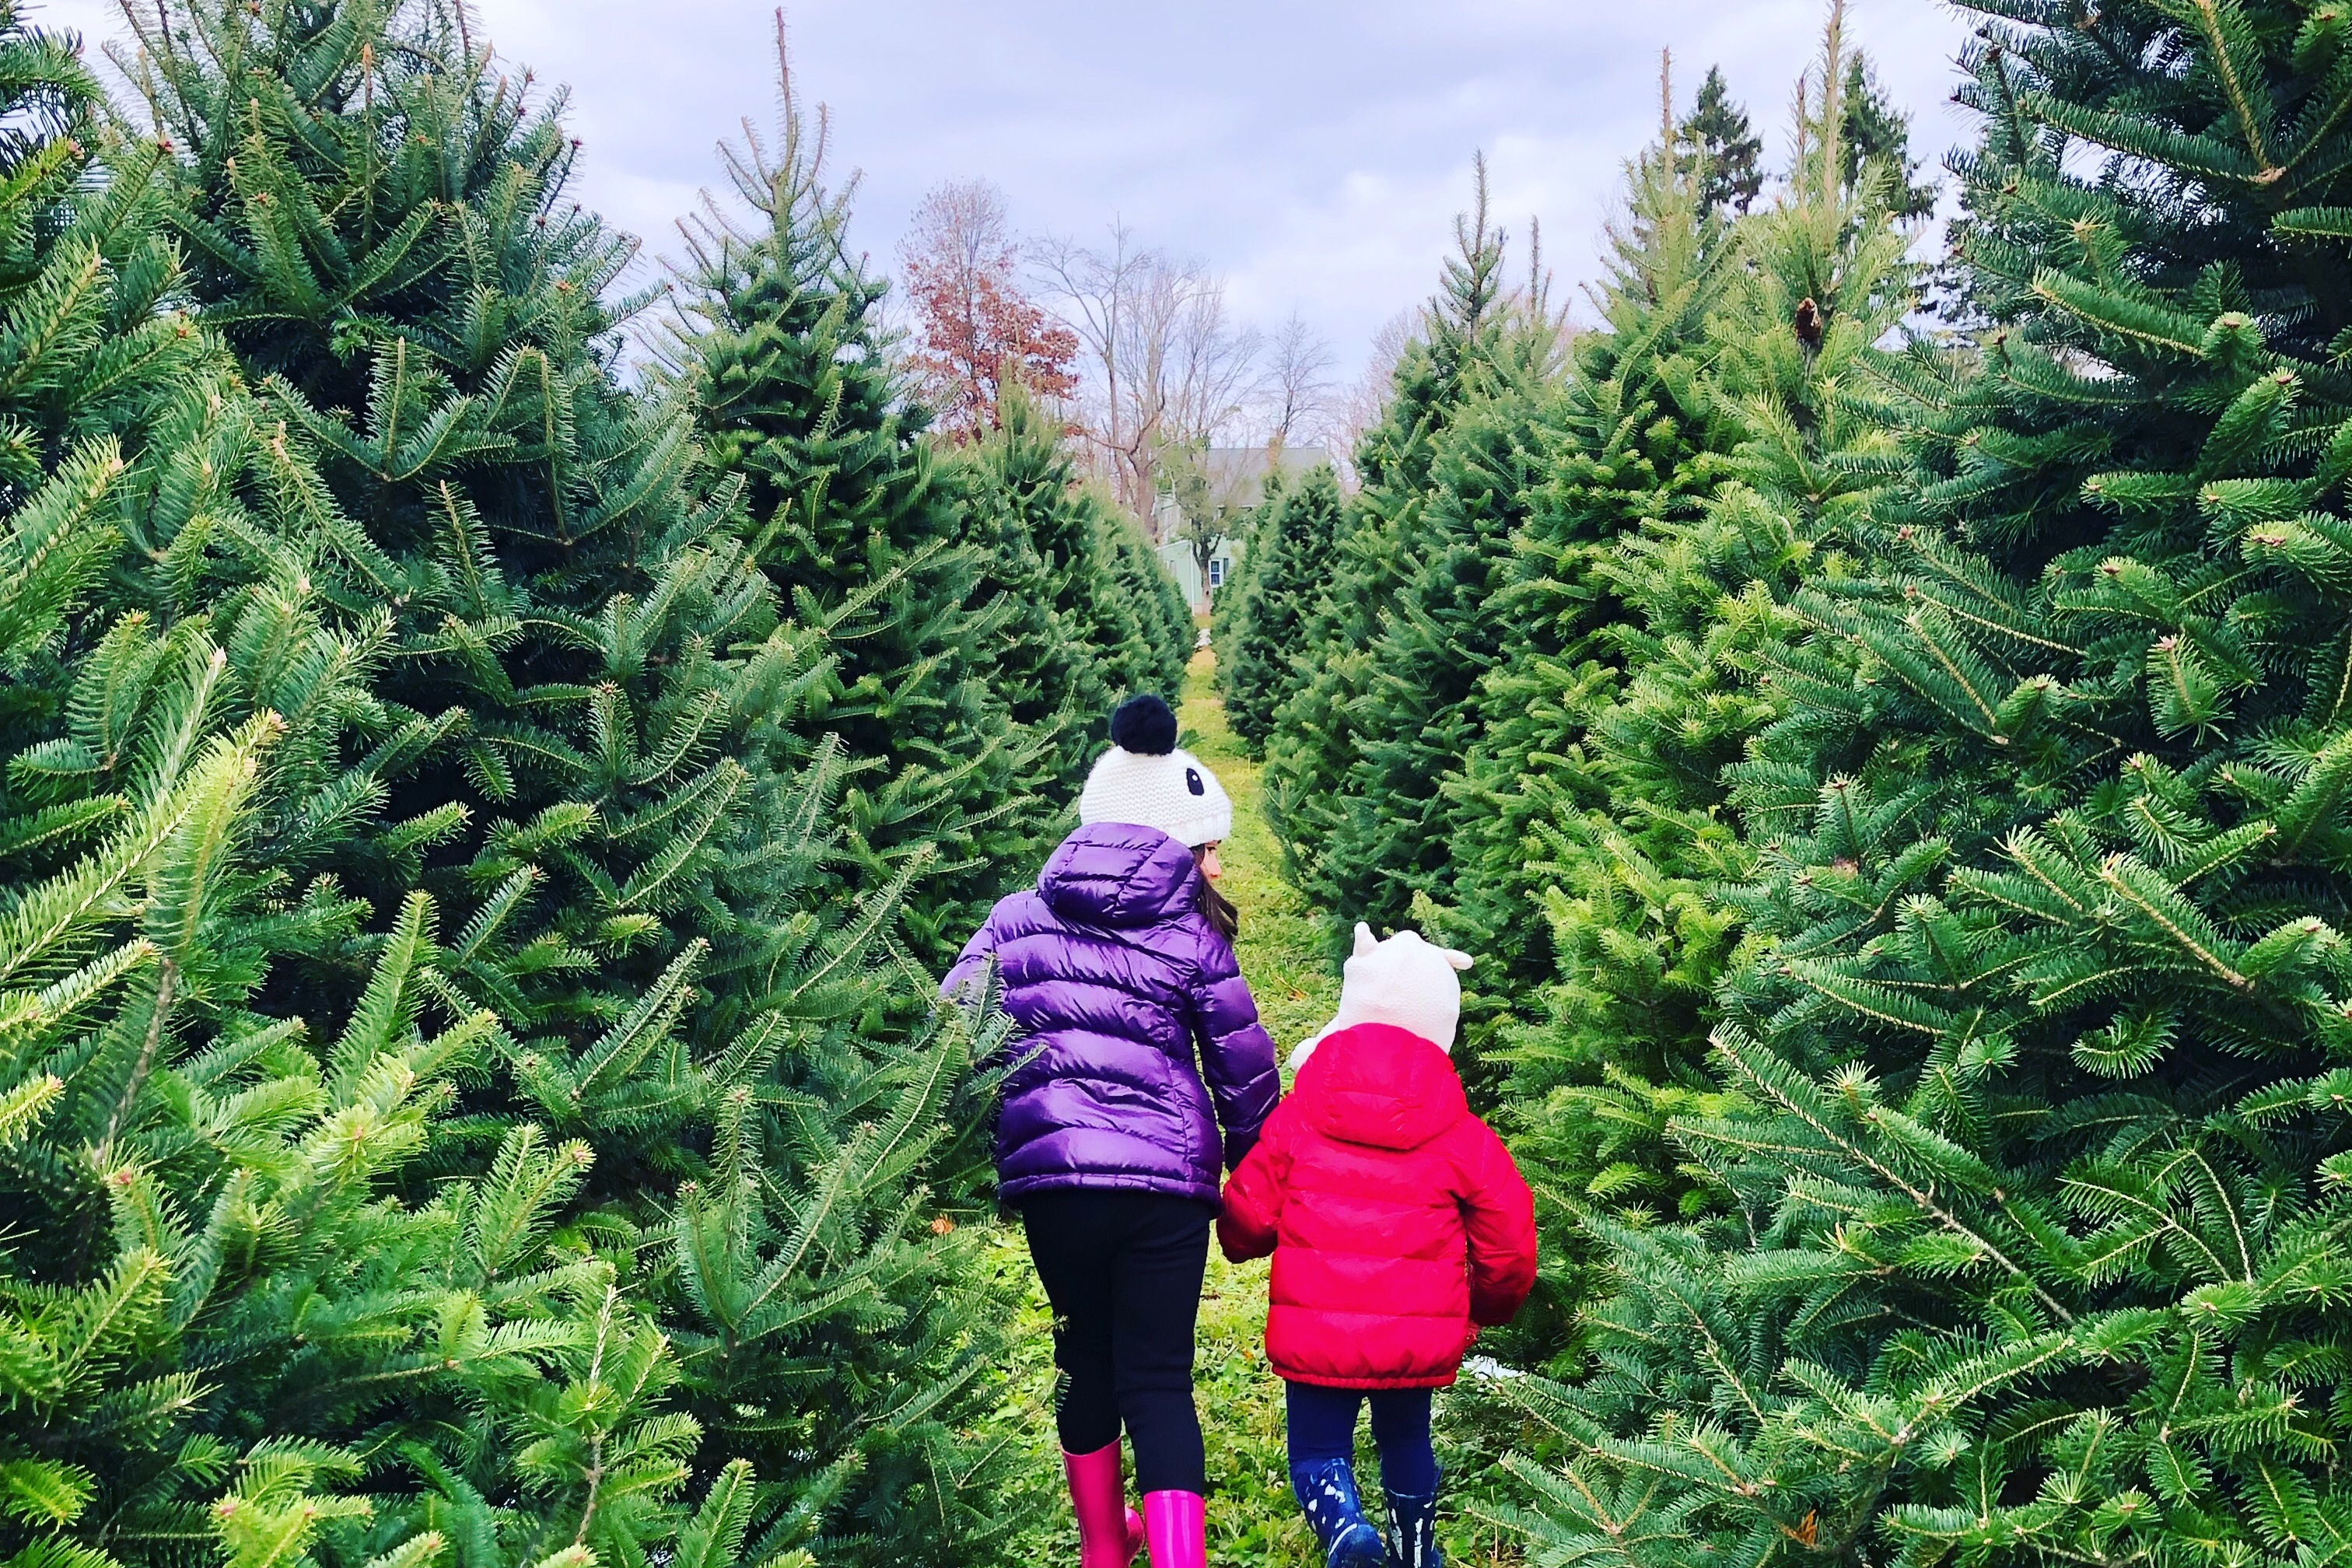 Cut Your Own Christmas Tree Near Me.20 Christmas Tree Farms Near Philadelphia Where You Can Buy